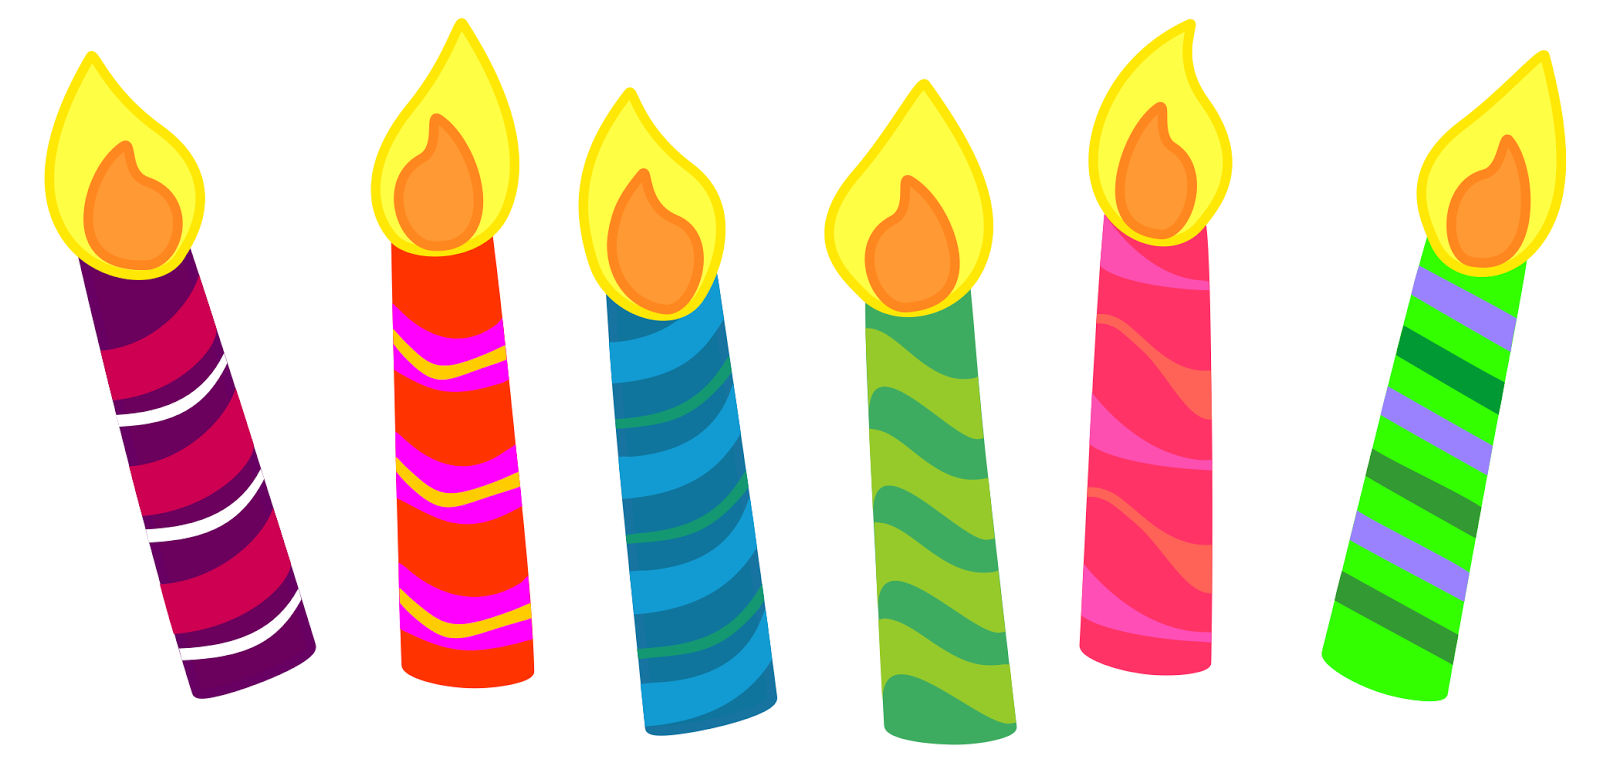 Candles clipart free large images-Candles clipart free large images-1